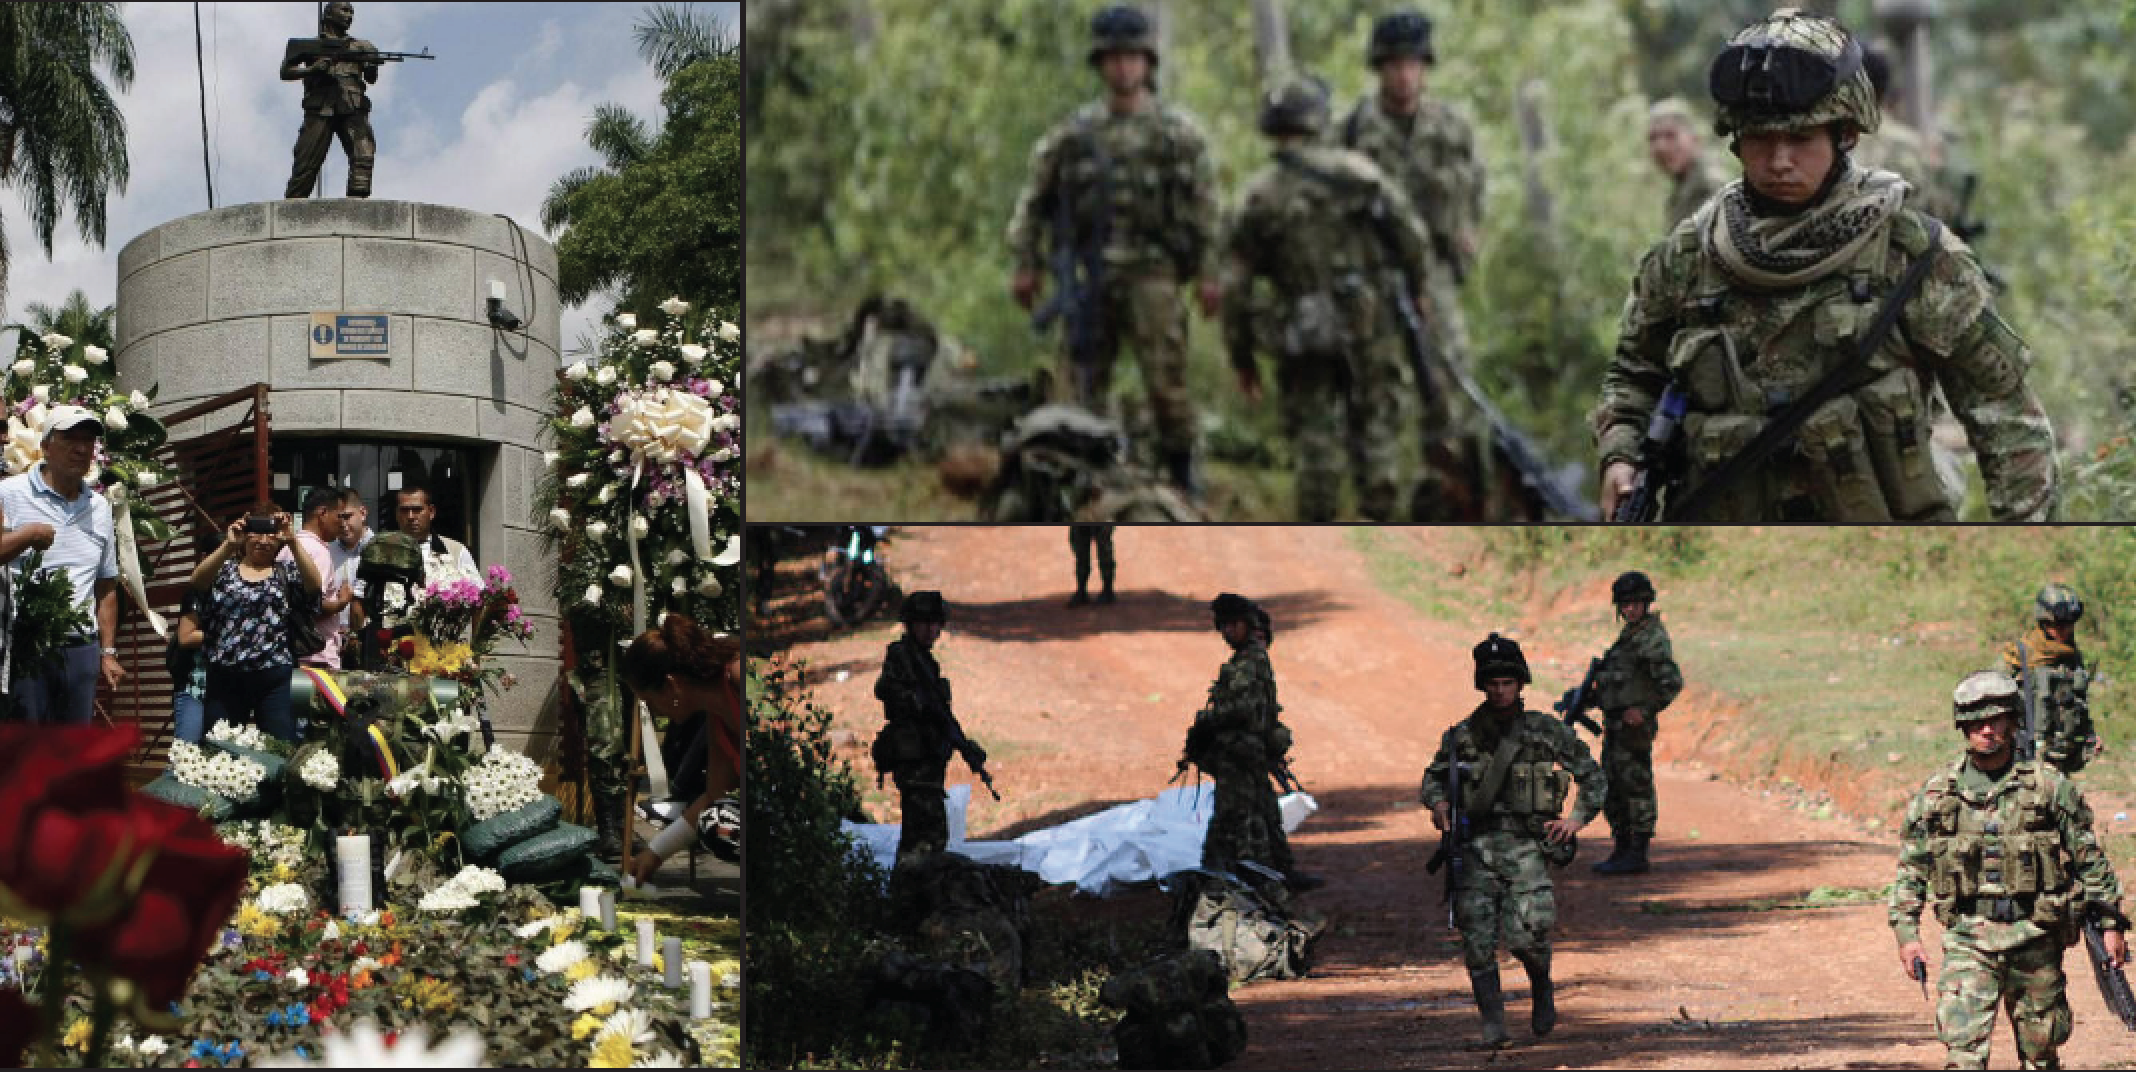 Above: The war between Columbia and Fuerzas Armadas Revolutionaries de Columbia (FARC) still continues. Stock Photos.